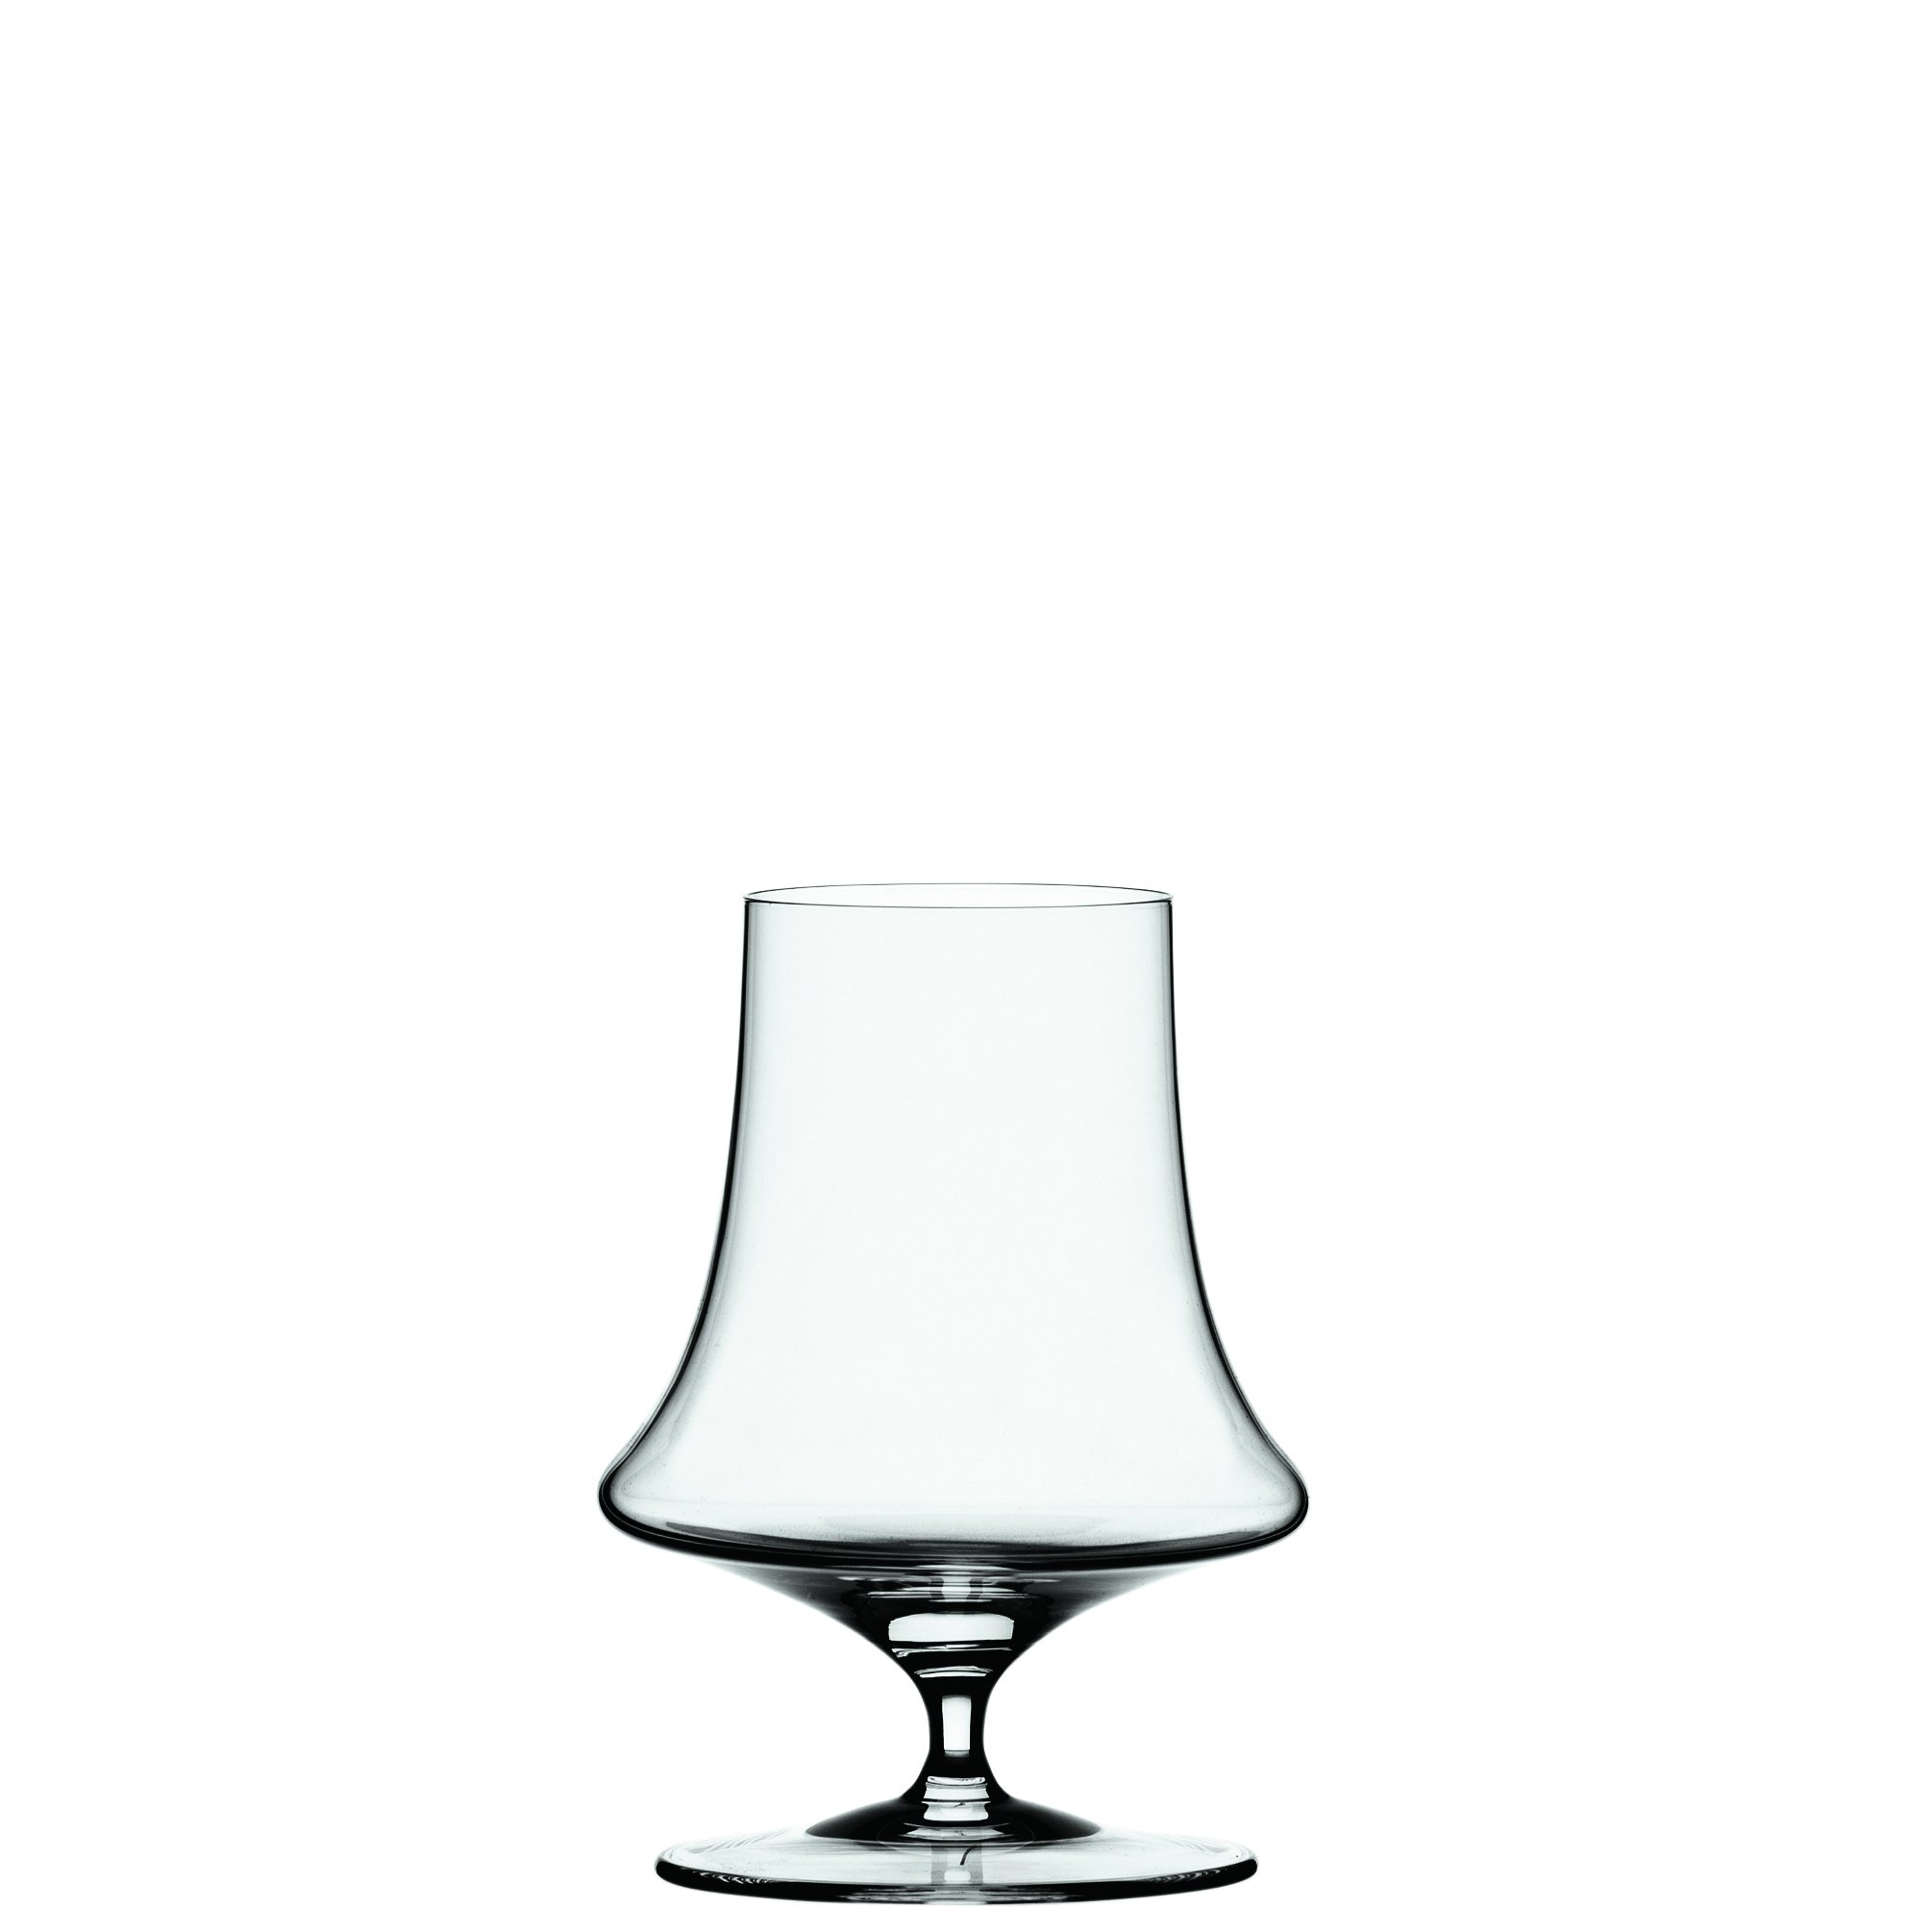 Spiegelau Willsberger Whiskey Glass (Set of 4), 11.5 oz, Clear